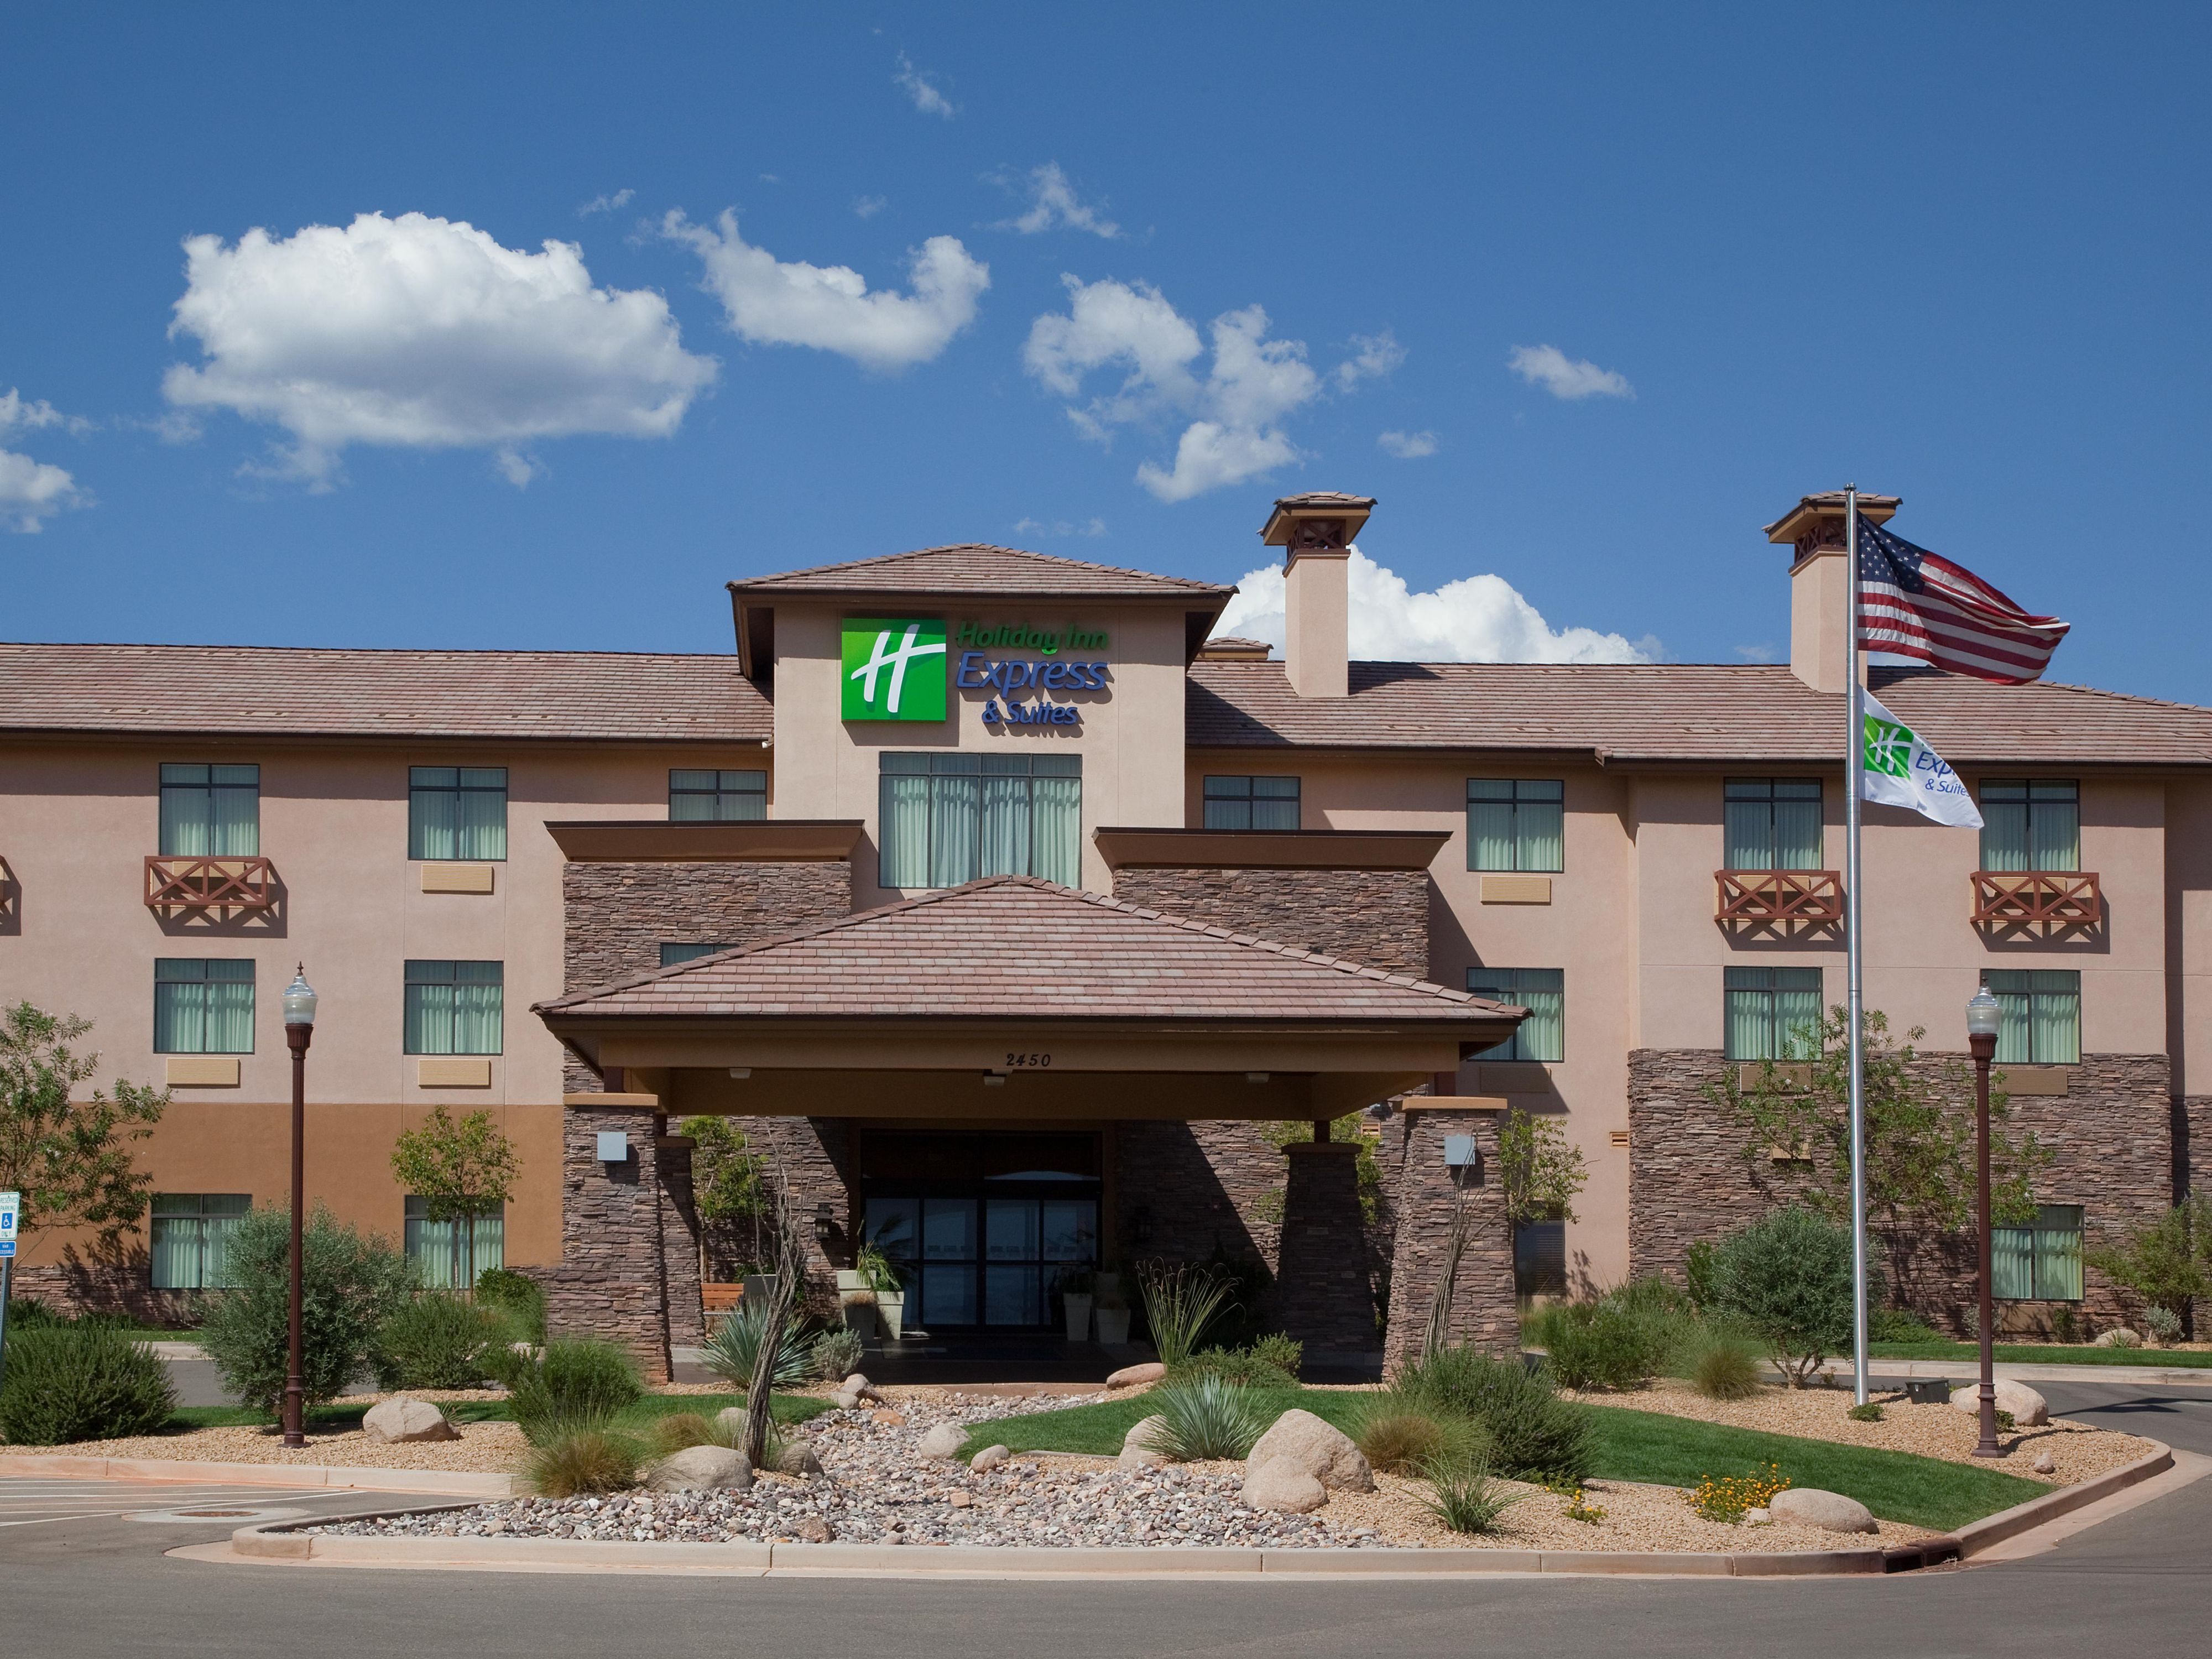 Take in the stunning views at the Holiday Inn Express & Suites